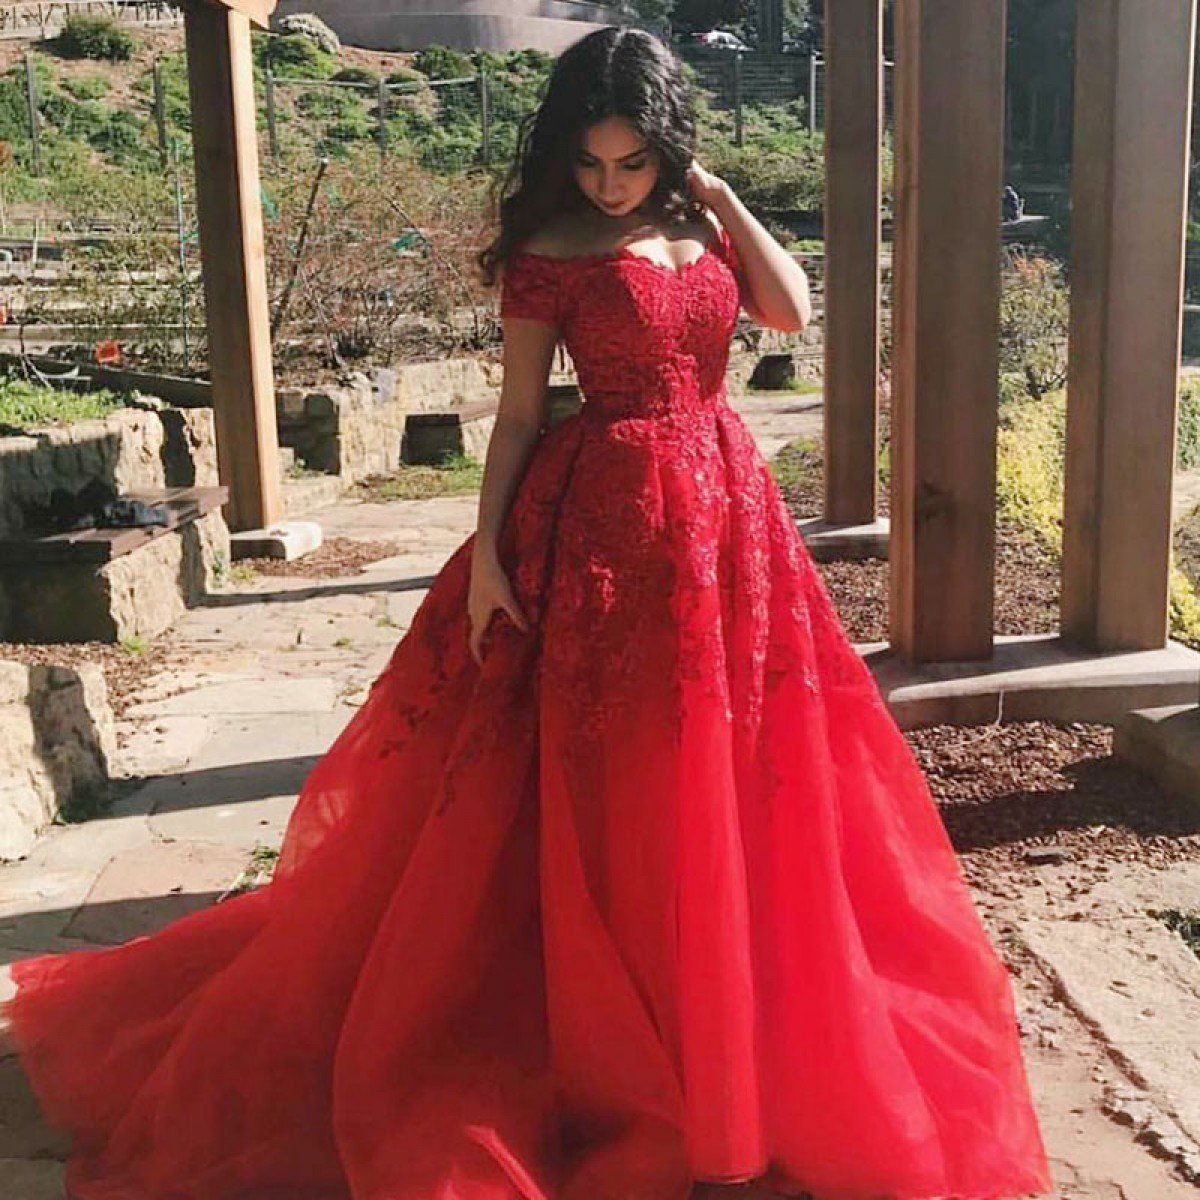 Aline off the shoulder court train red tulle prom dress with lace